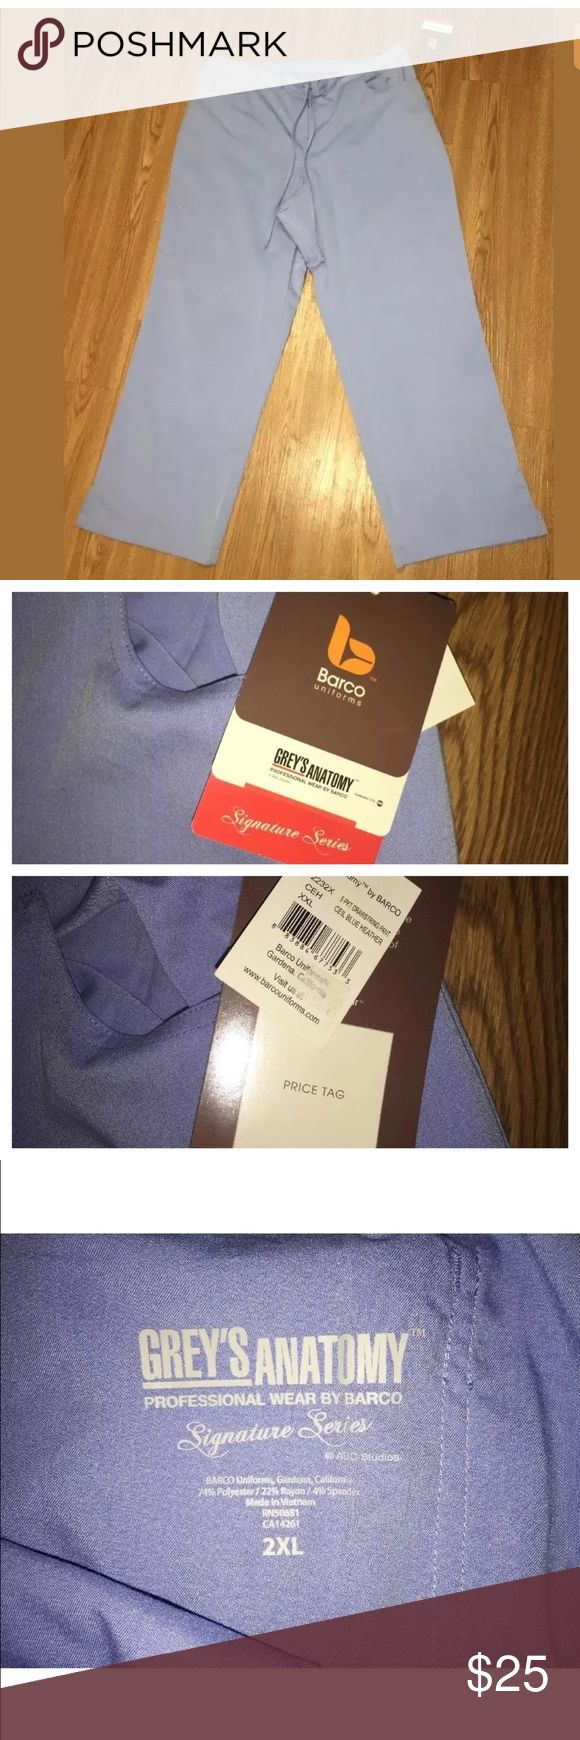 """NWT Greys Anatomy 2XL XXL Ceil Blue scrub pants New with tags Greys Anatomy scrub pants in a 2XL. 5 pocket drawstring pant in Ceil blue heather. Classic style with elastic and drawstring waist. Laying flat unstretched measurements: waistband: 20 1/2"""", front rise: 13"""", inseam: 31"""". Grey's Anatomy Pants"""